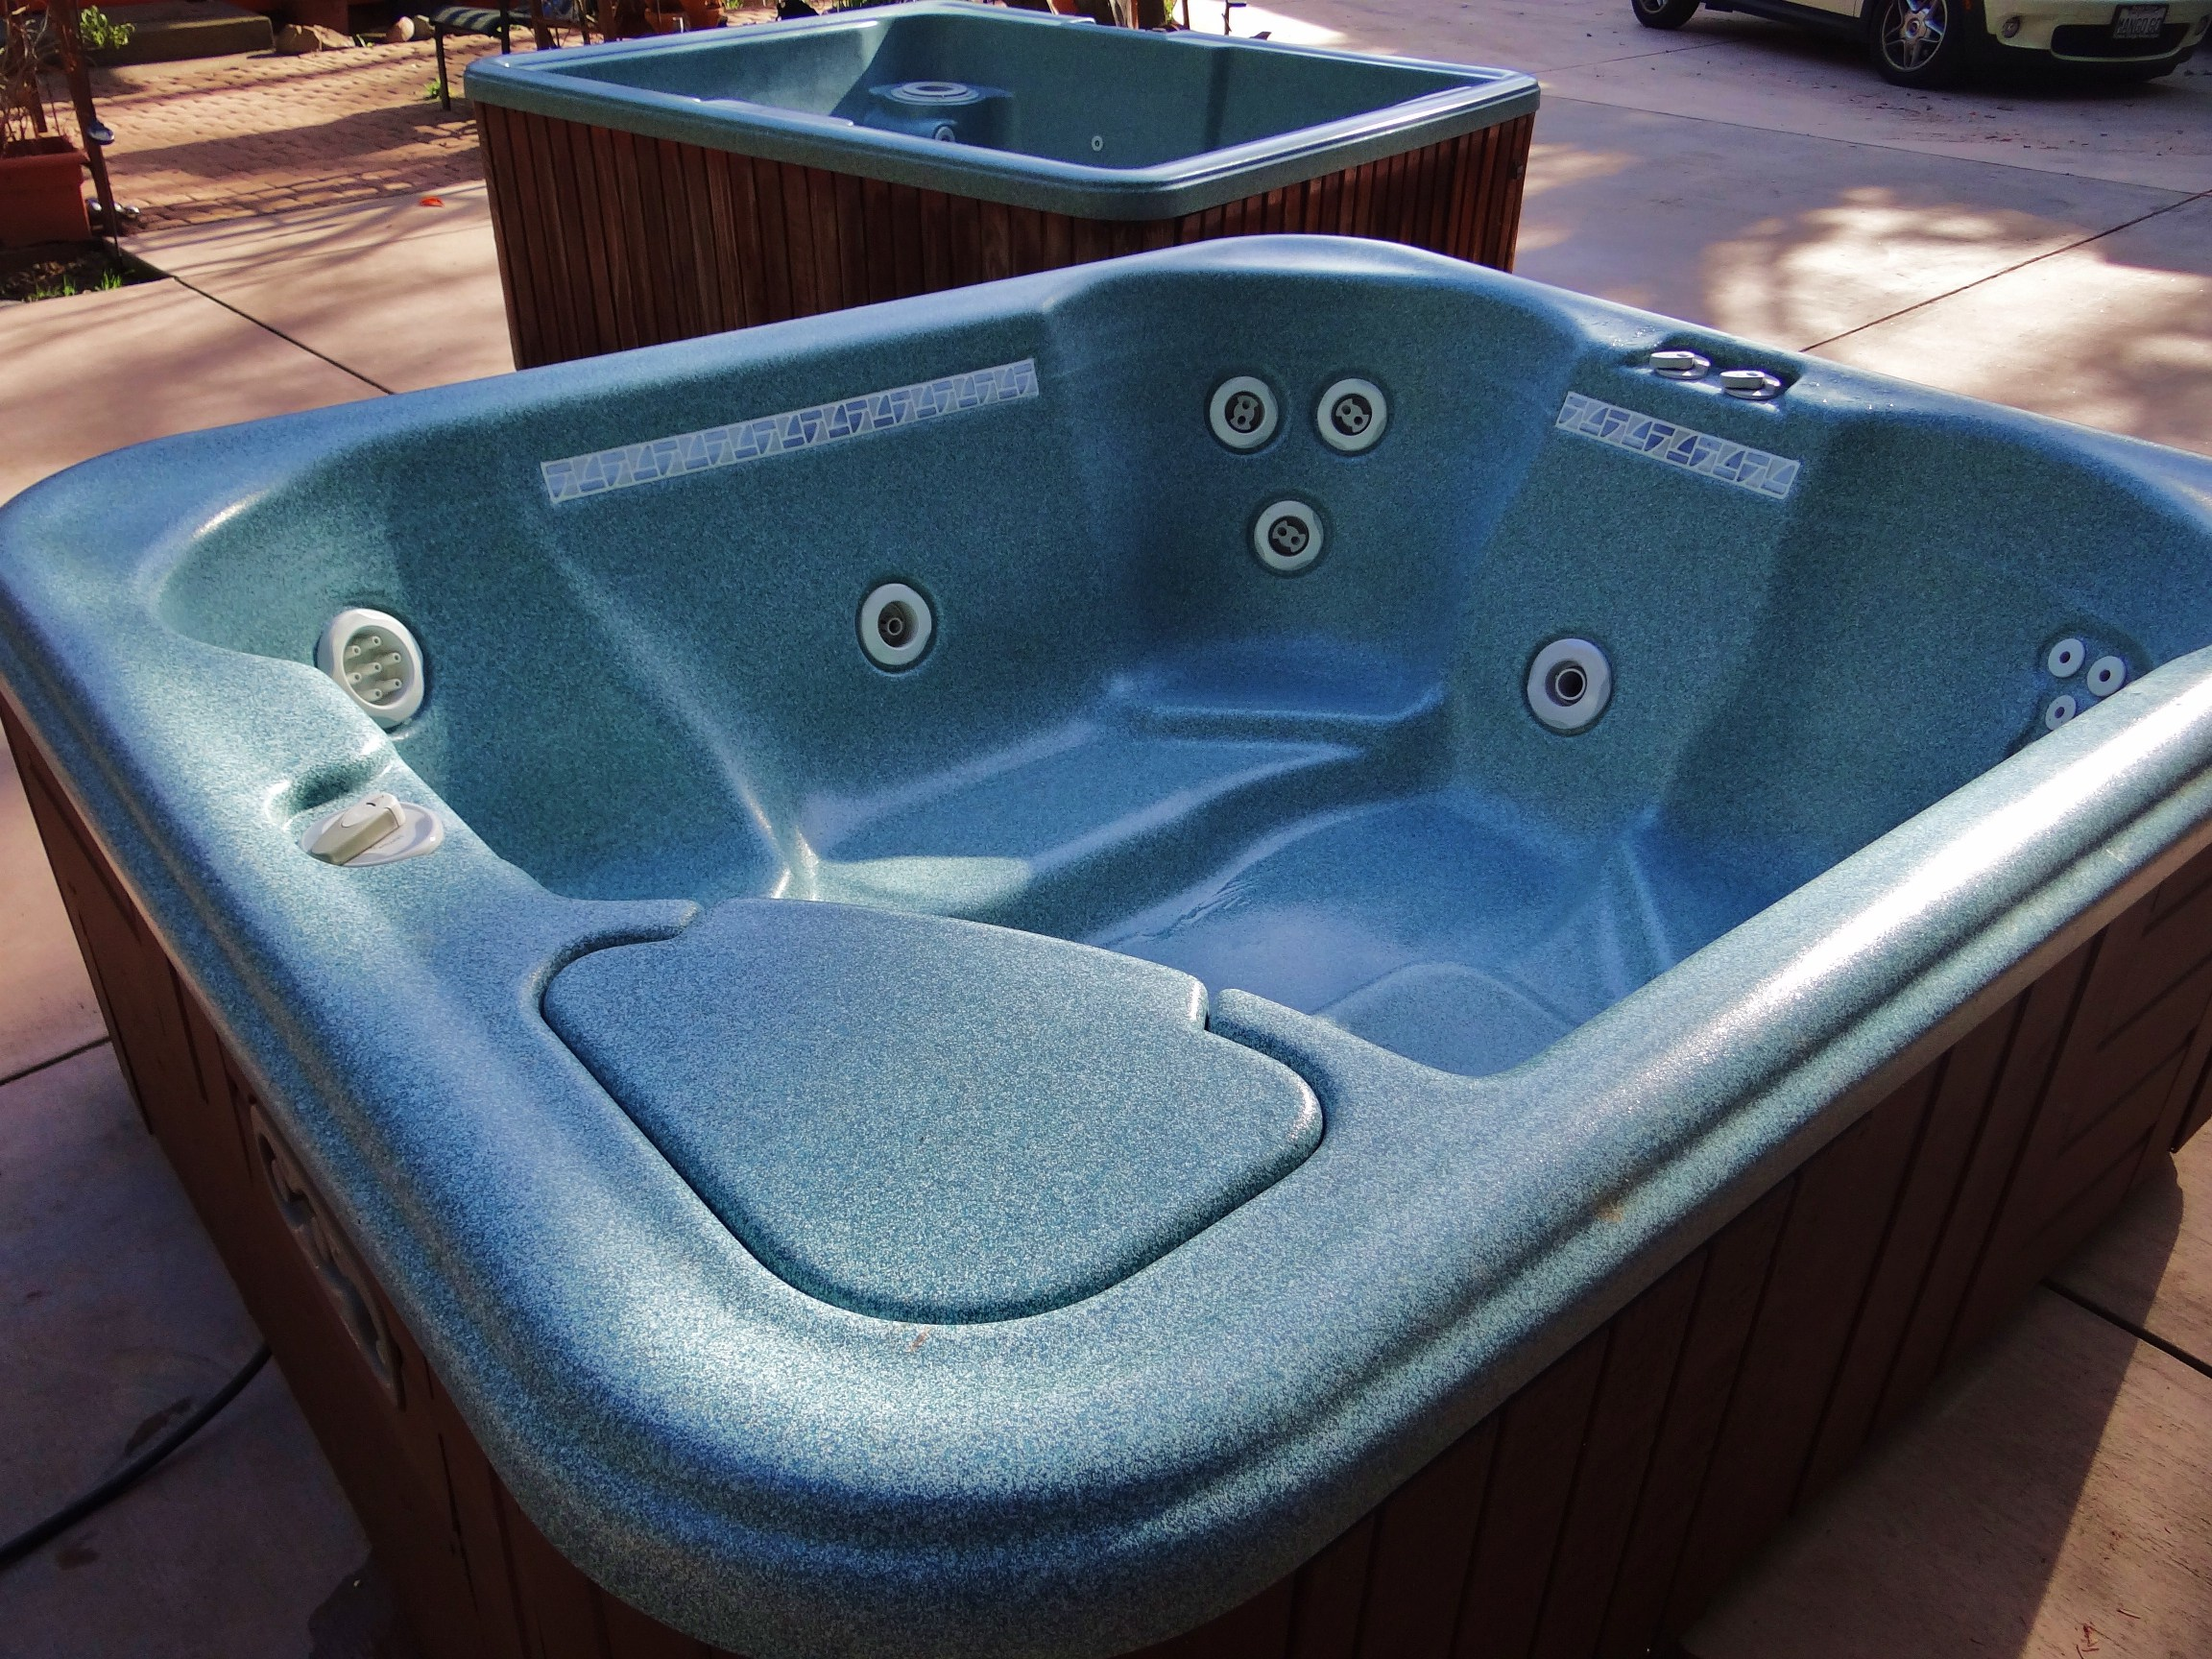 Refurbished Spa Installation Saves Owners Money